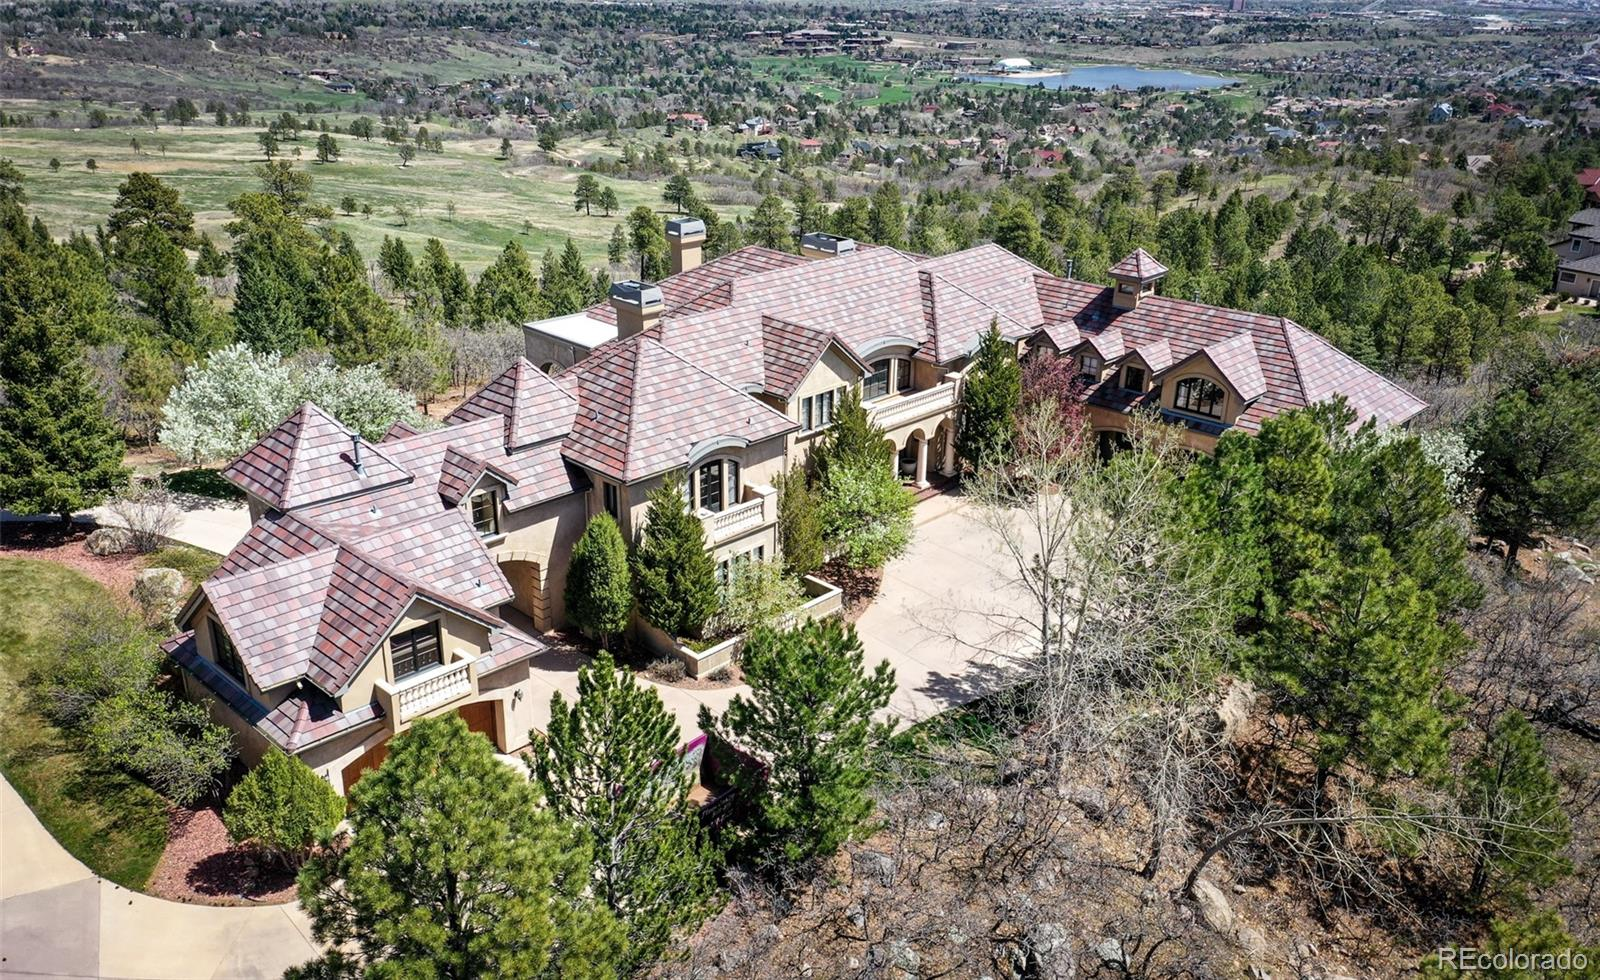 Stunning custom mansion on private 1.35 acre lot at the end of a quiet cul de sac in gated & prestigious Broadmoor Resort-Sweeping, unobstructed 180 degree city, lake & mountain views from every level-Over 14,000 sq. ft. w/ a great floor plan for some serious entertaining & or extended family living-20ft. custom ceilings on main level-10ft ceilings in basement-4 newer furnaces & central air conditioners-2 newer humidifiers + 3 newer hot water heaters-Custom 20ft ceilings on main level-Custom window coverings-Angles, arches, pillars & hand troweled walls-Surround sound on every level-Walkout basement-Security system w/ cameras-New cement tile roof.